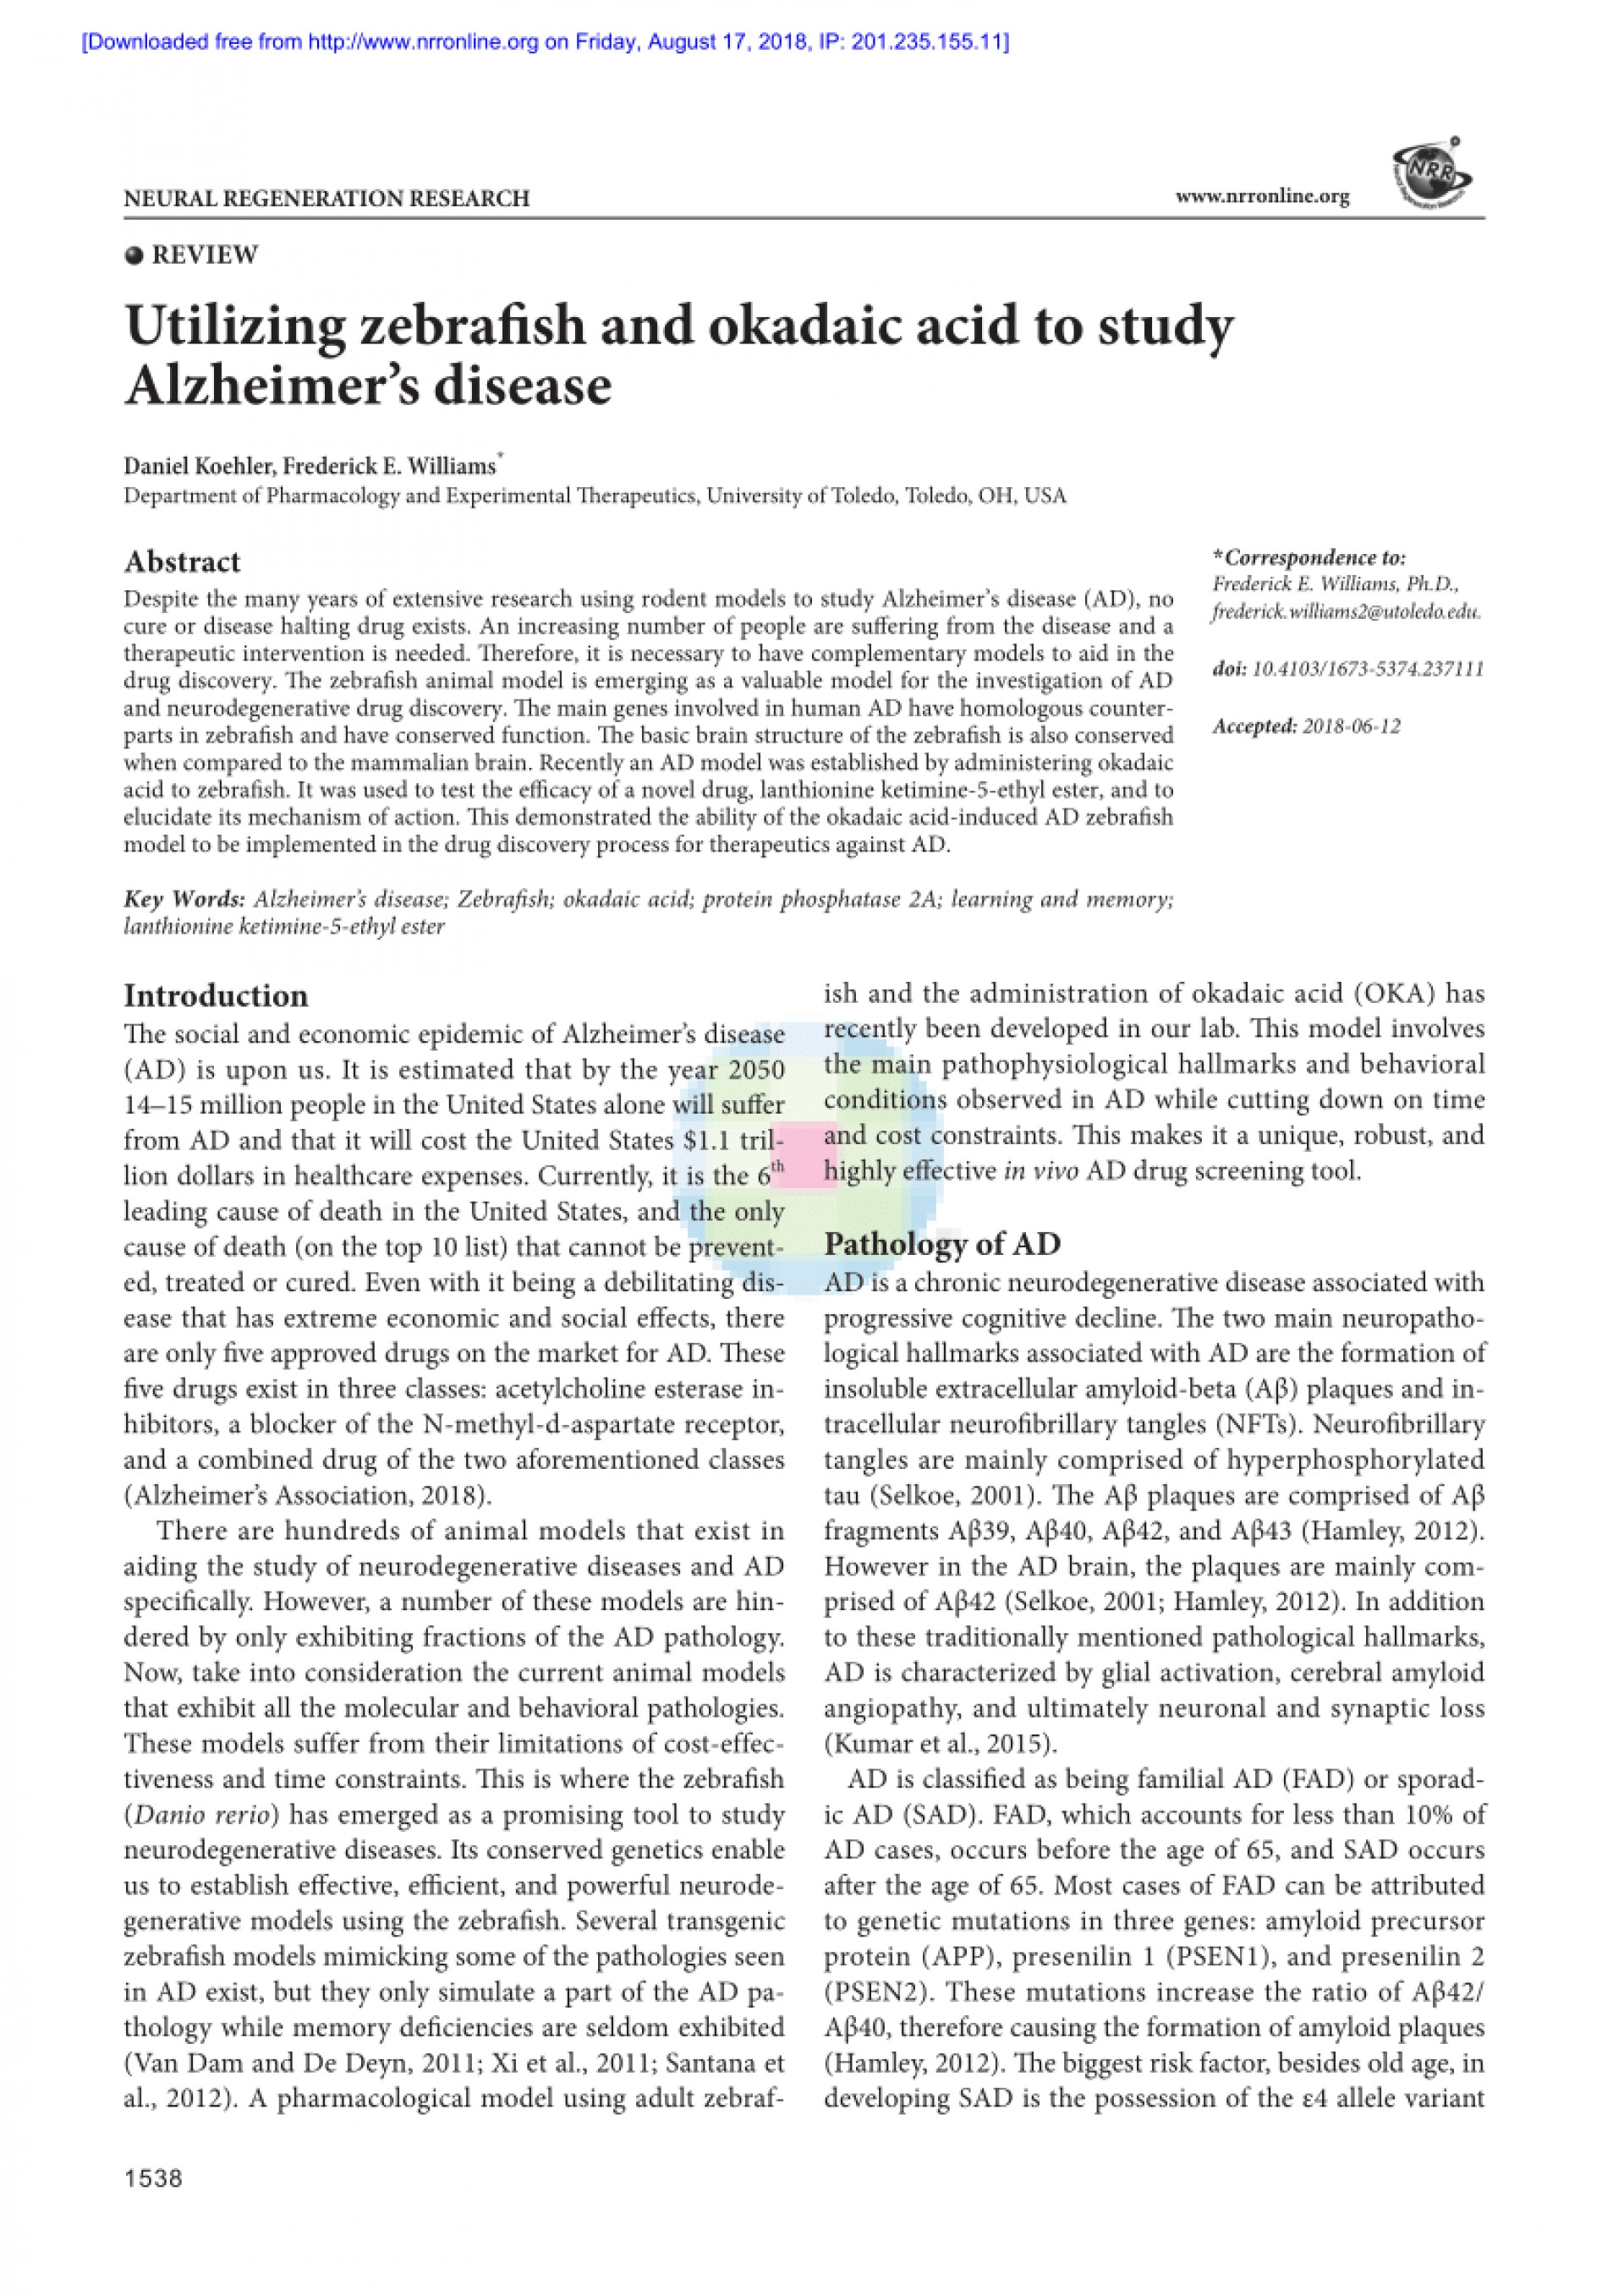 005 Alzheimers Disease Research Paper Impressive Alzheimer's Title Example Outline For 1920